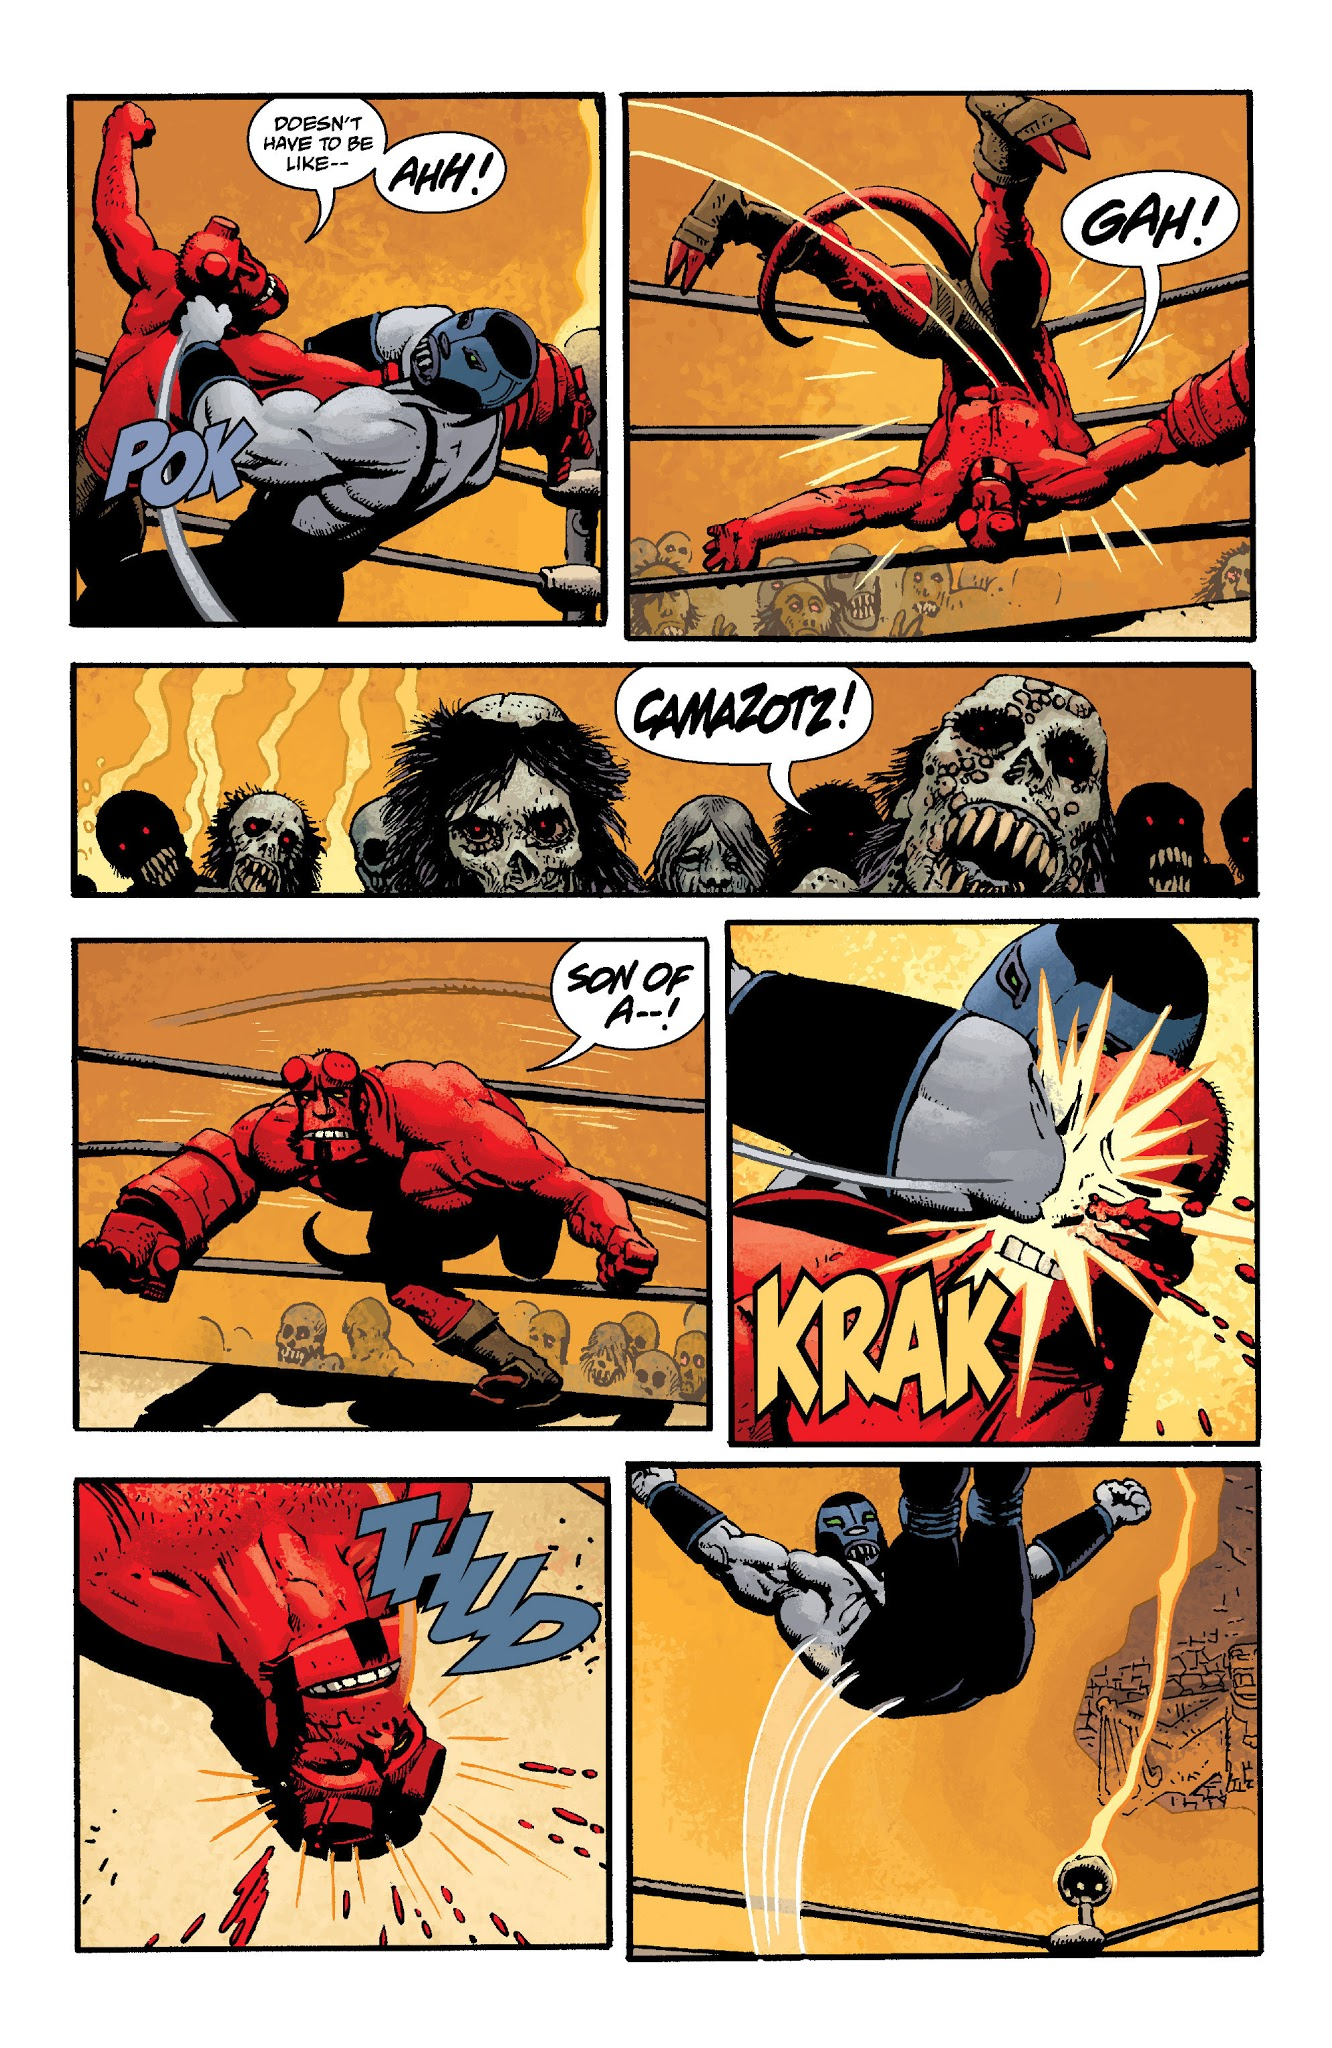 Hellboy In Mexico (2016) #1 pg.28, lettered by Clem Robins.